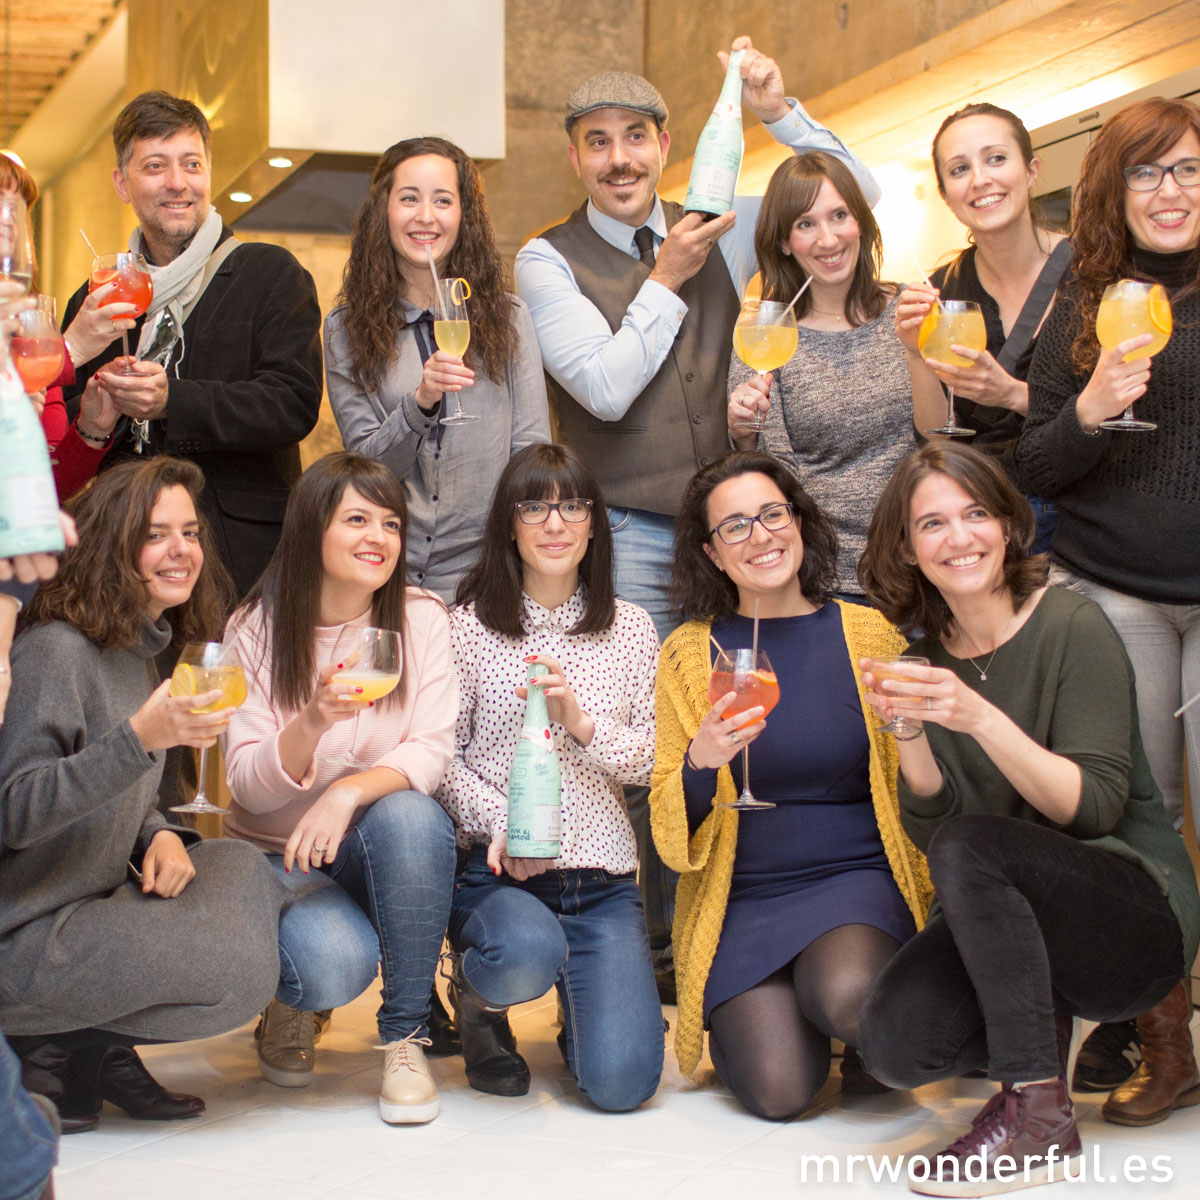 mrwonderful_evento-codorniu-sweet-edition-cocktails_canela-fina-2016-45